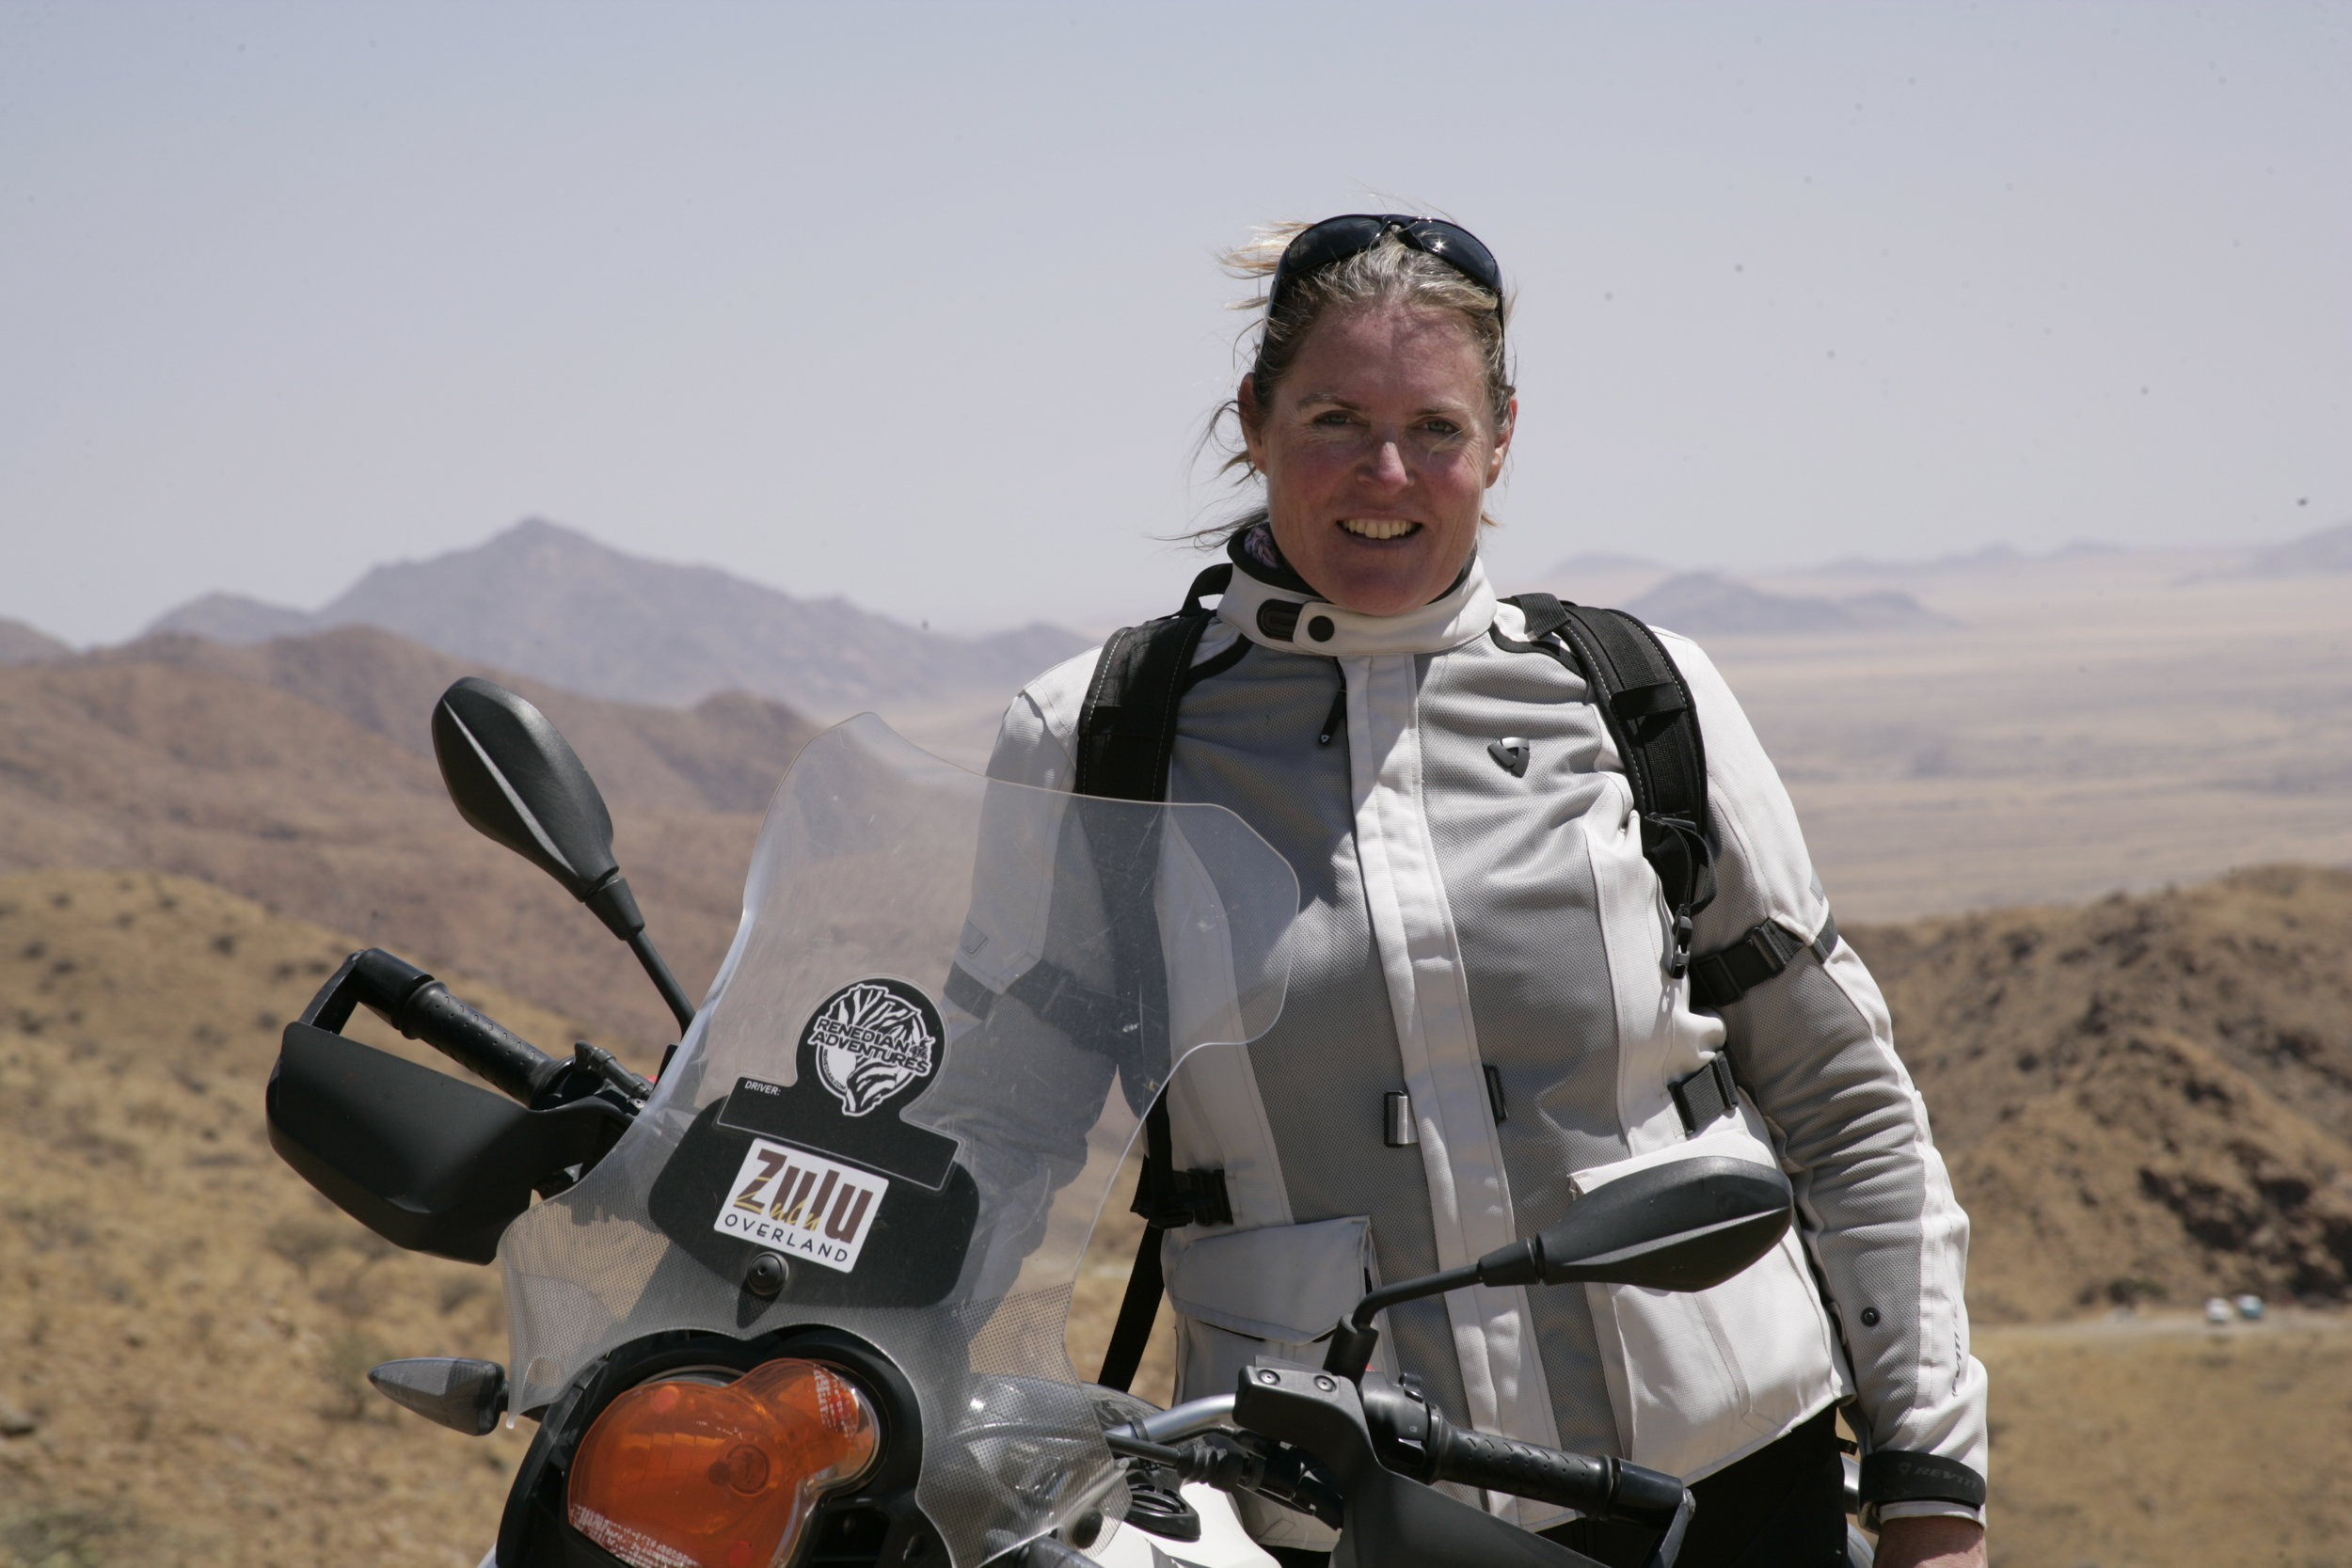 (Namibia, 2014: Alisa Clickenger, Founder of Women's Motorcycle Tours)